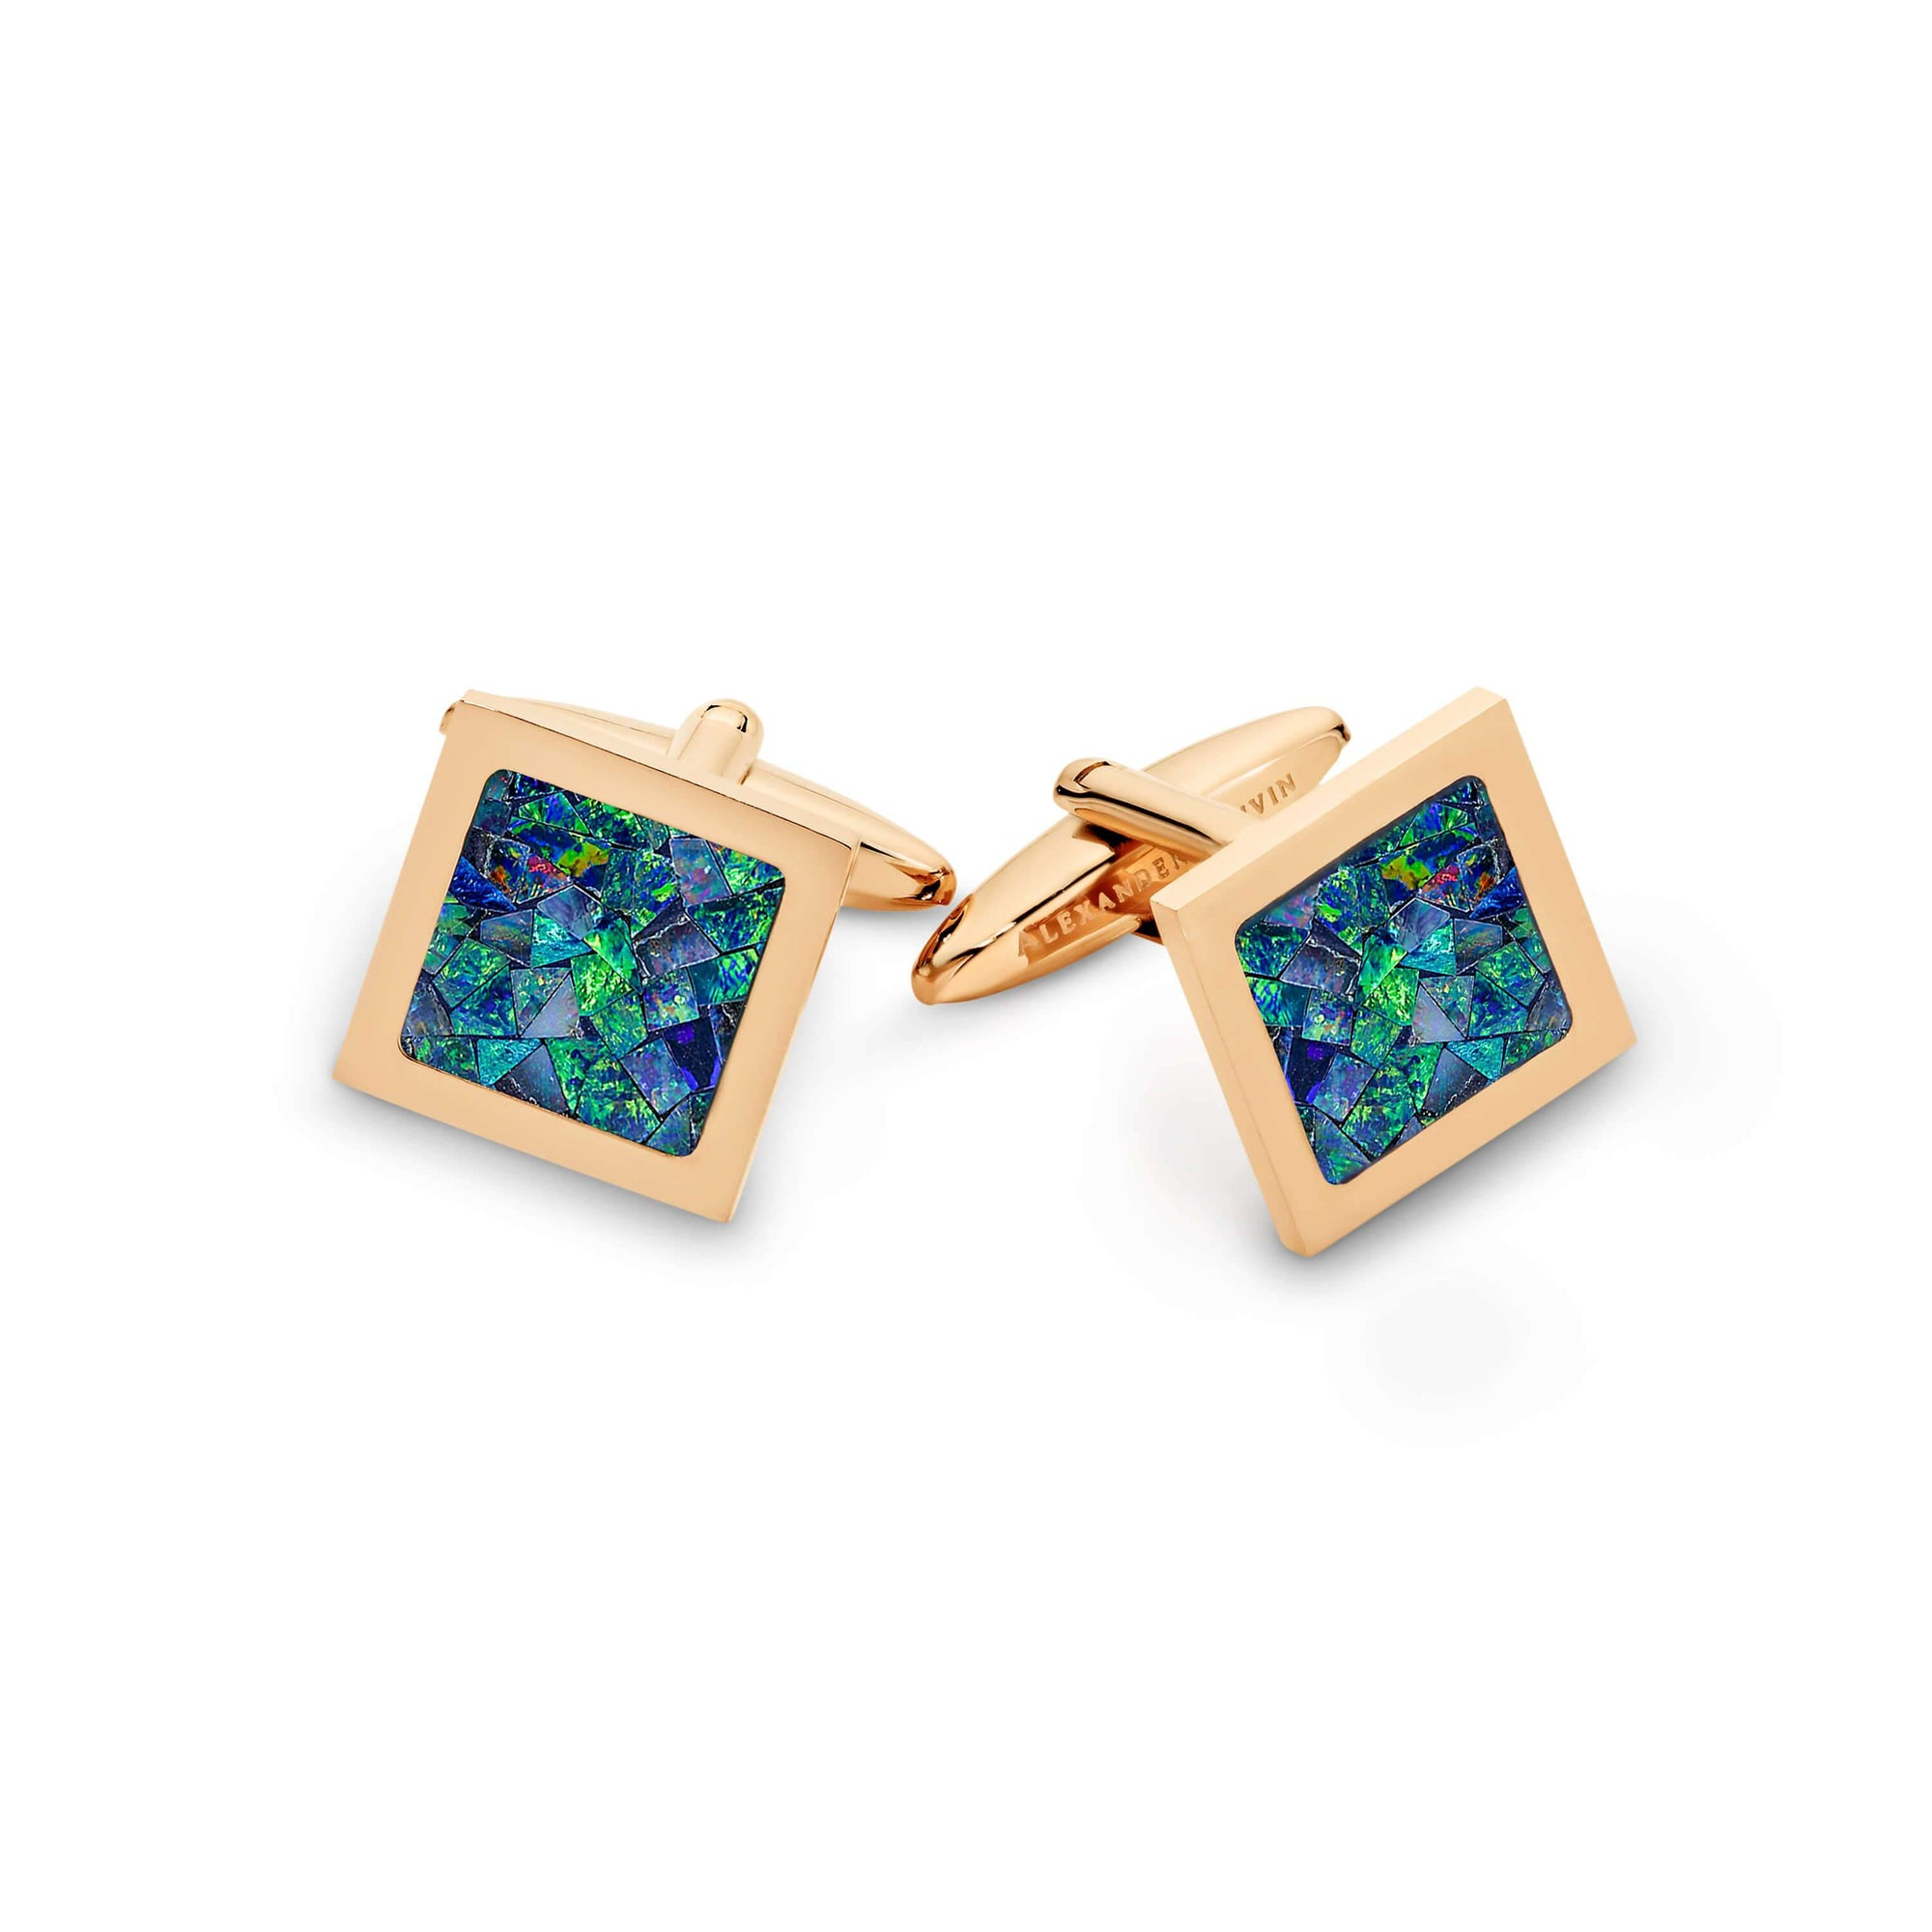 Square Premium Opal Cufflinks (Green Rose Gold) Classic & Modern Cufflinks Clinks Australia Default